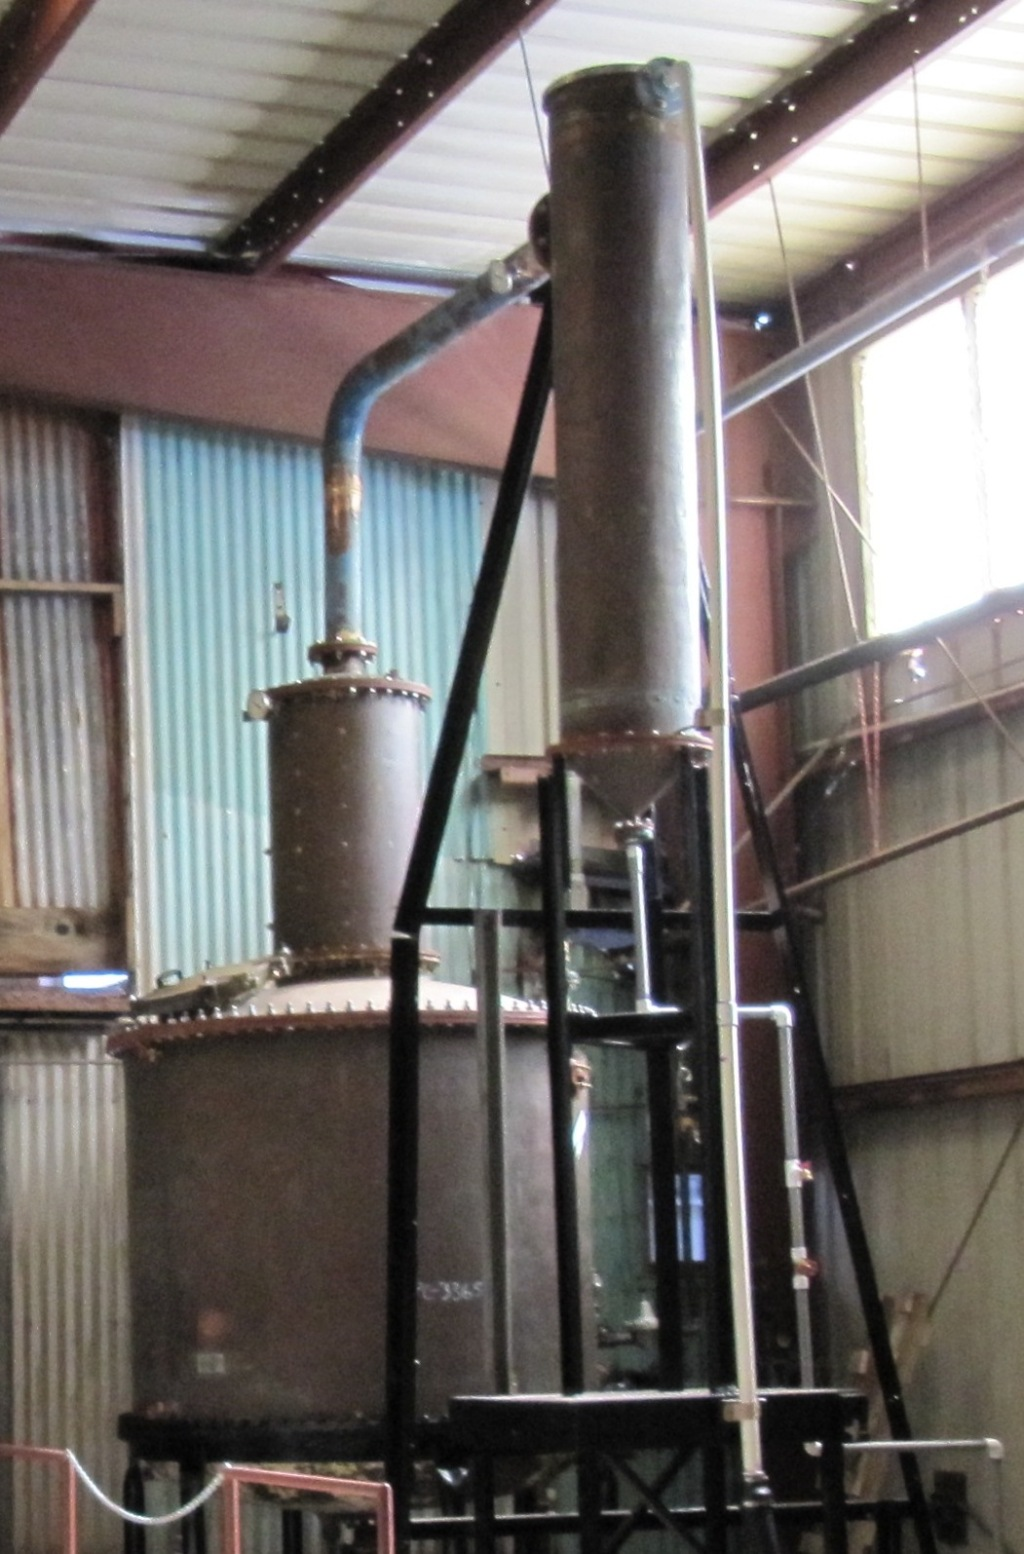 The  Koloa Rum Compaany 1210 gallon Copper Still (Photo courtesy Jeanne Toulon)